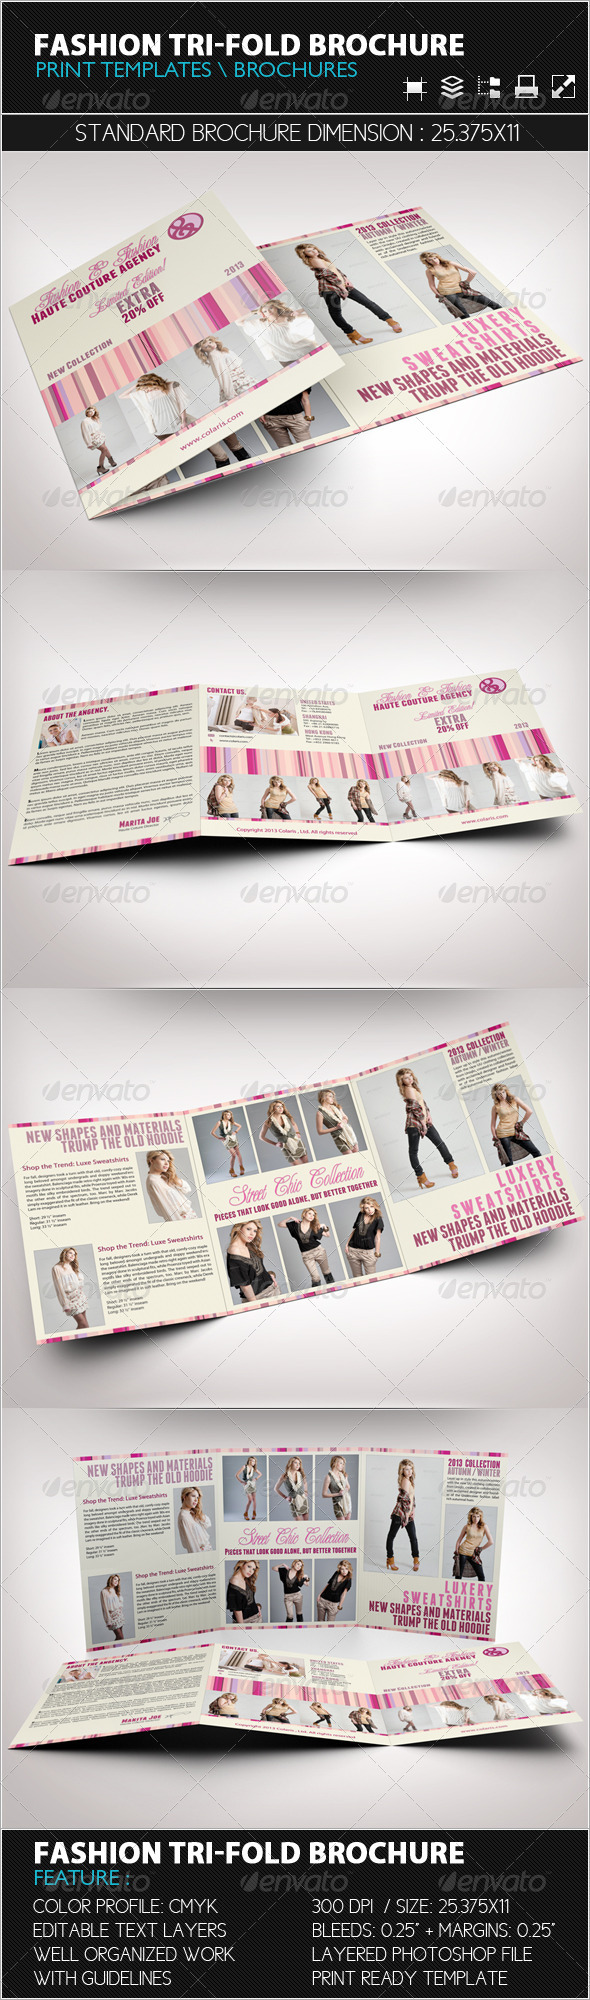 Fashion Tri-Fold Brochure Template - Catalogs Brochures